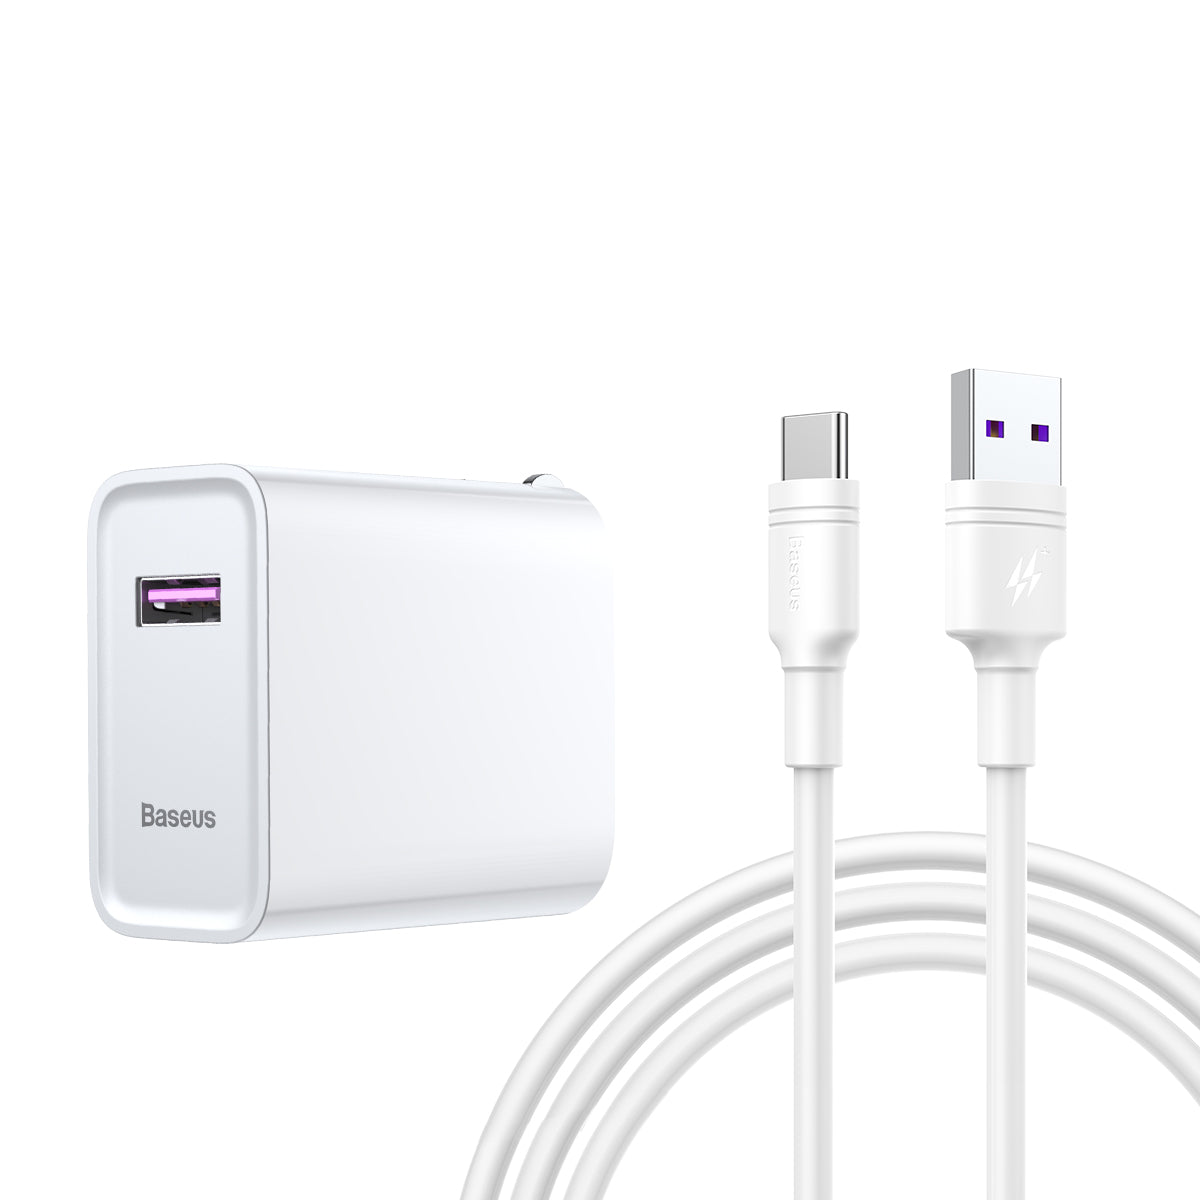 BASEUS Speed Huawei 22.5W Super Charging Adapter with USB to USB-C Cable (1 m)